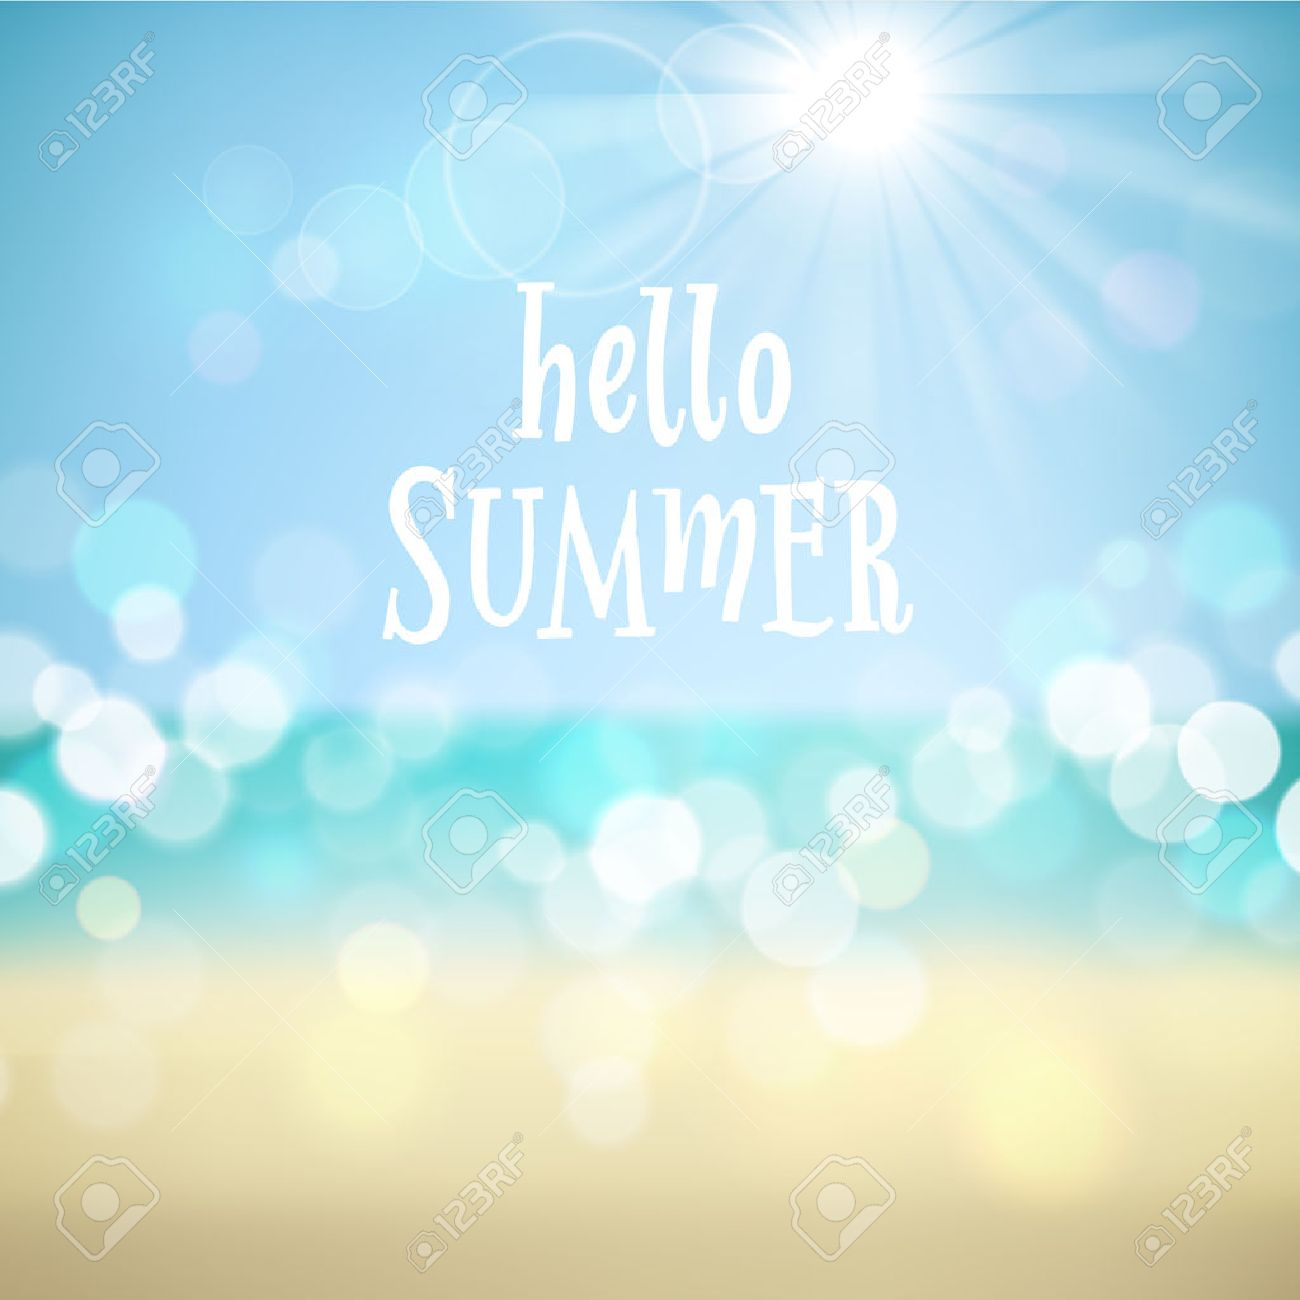 Hello summer. Poster on tropical beach background. Vector eps10. - 28985443